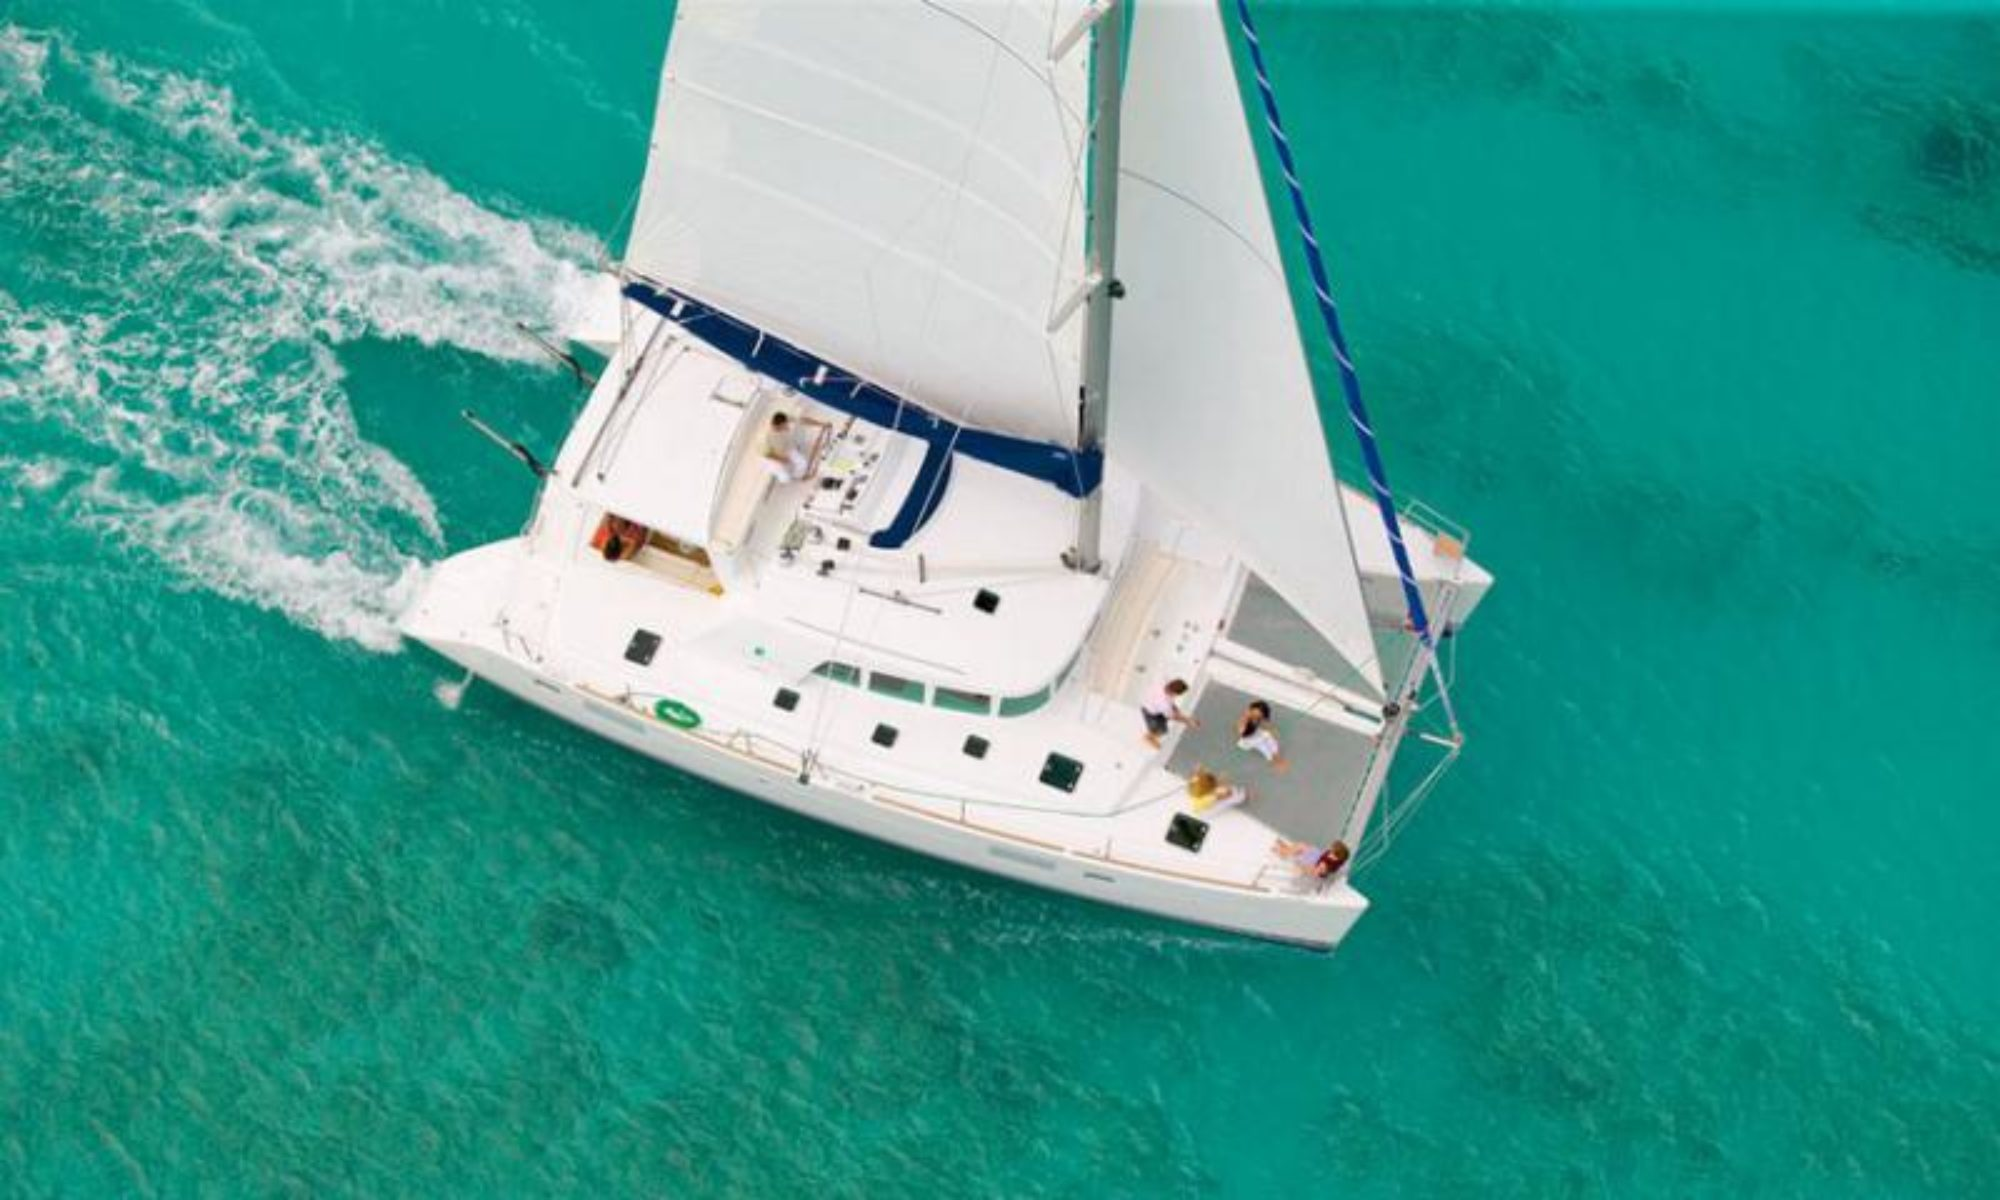 Greece Charter Vacanze in Catamarano in Grecia